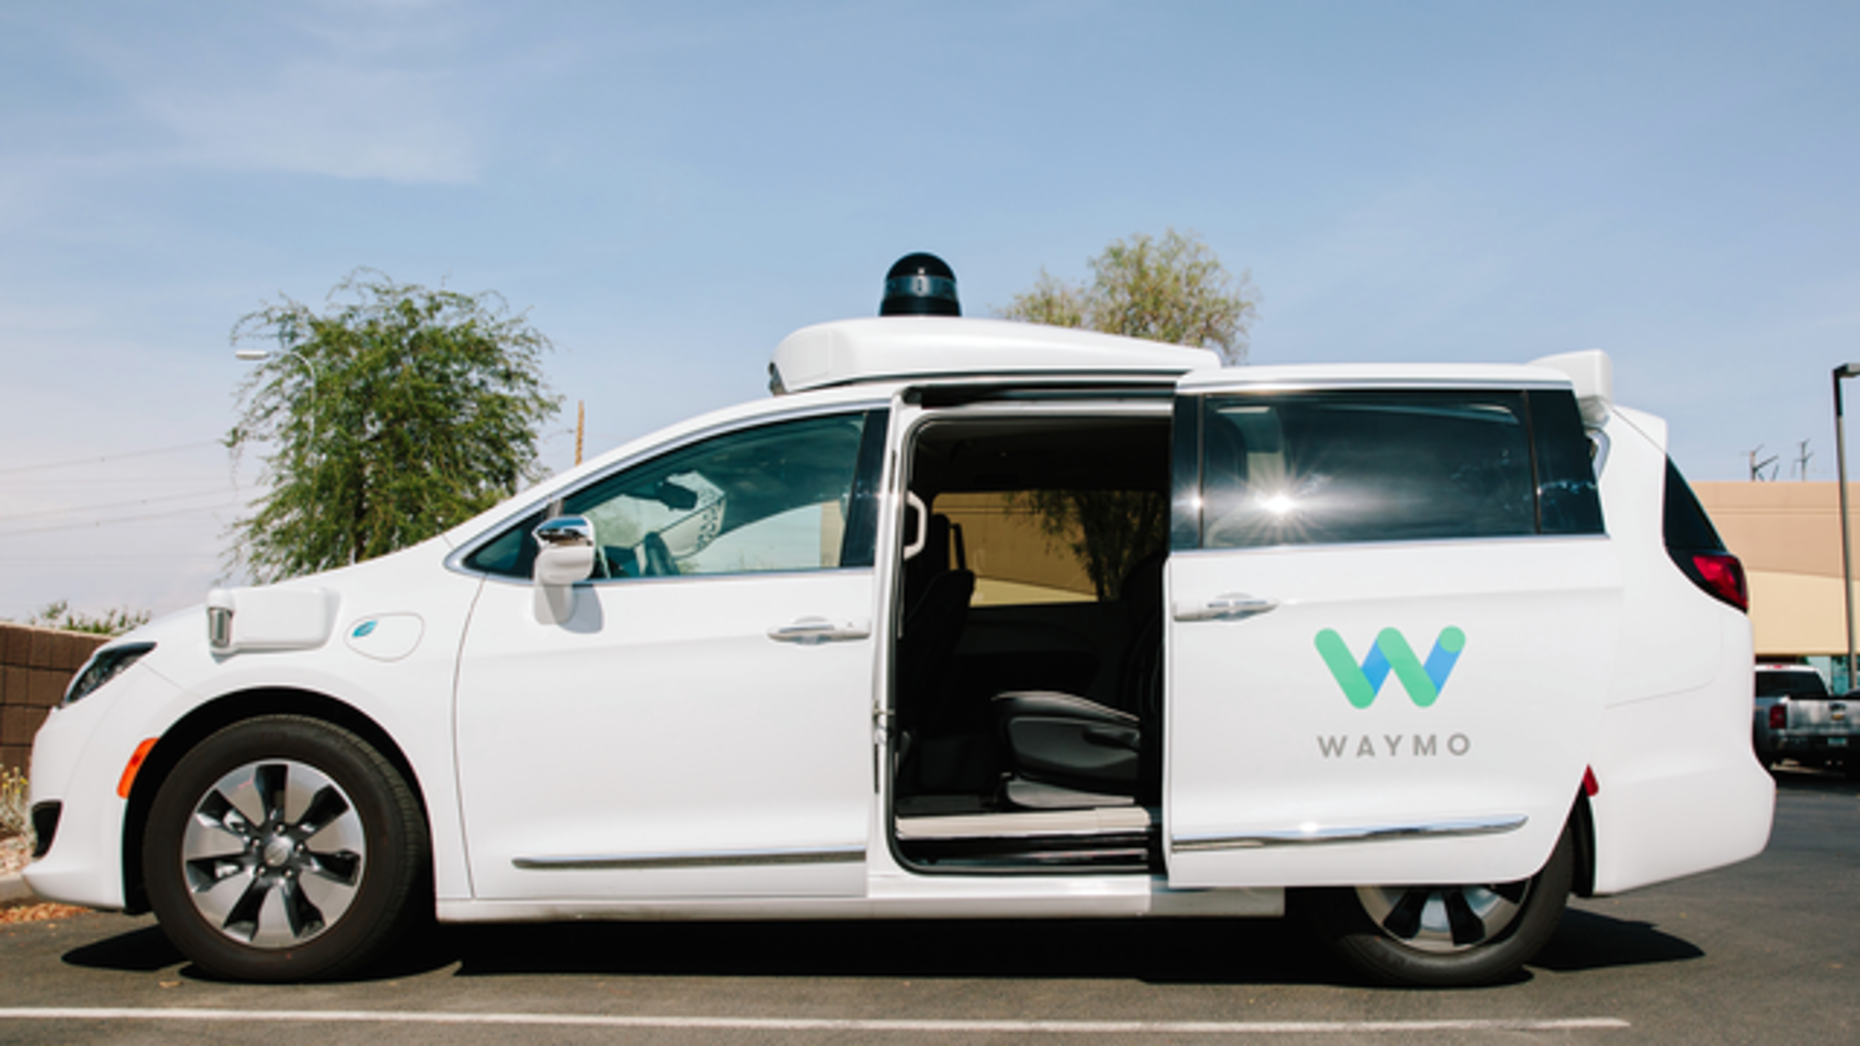 A Waymo vehicle sits parked in Chandler, Ariz. Photo: Bloomberg